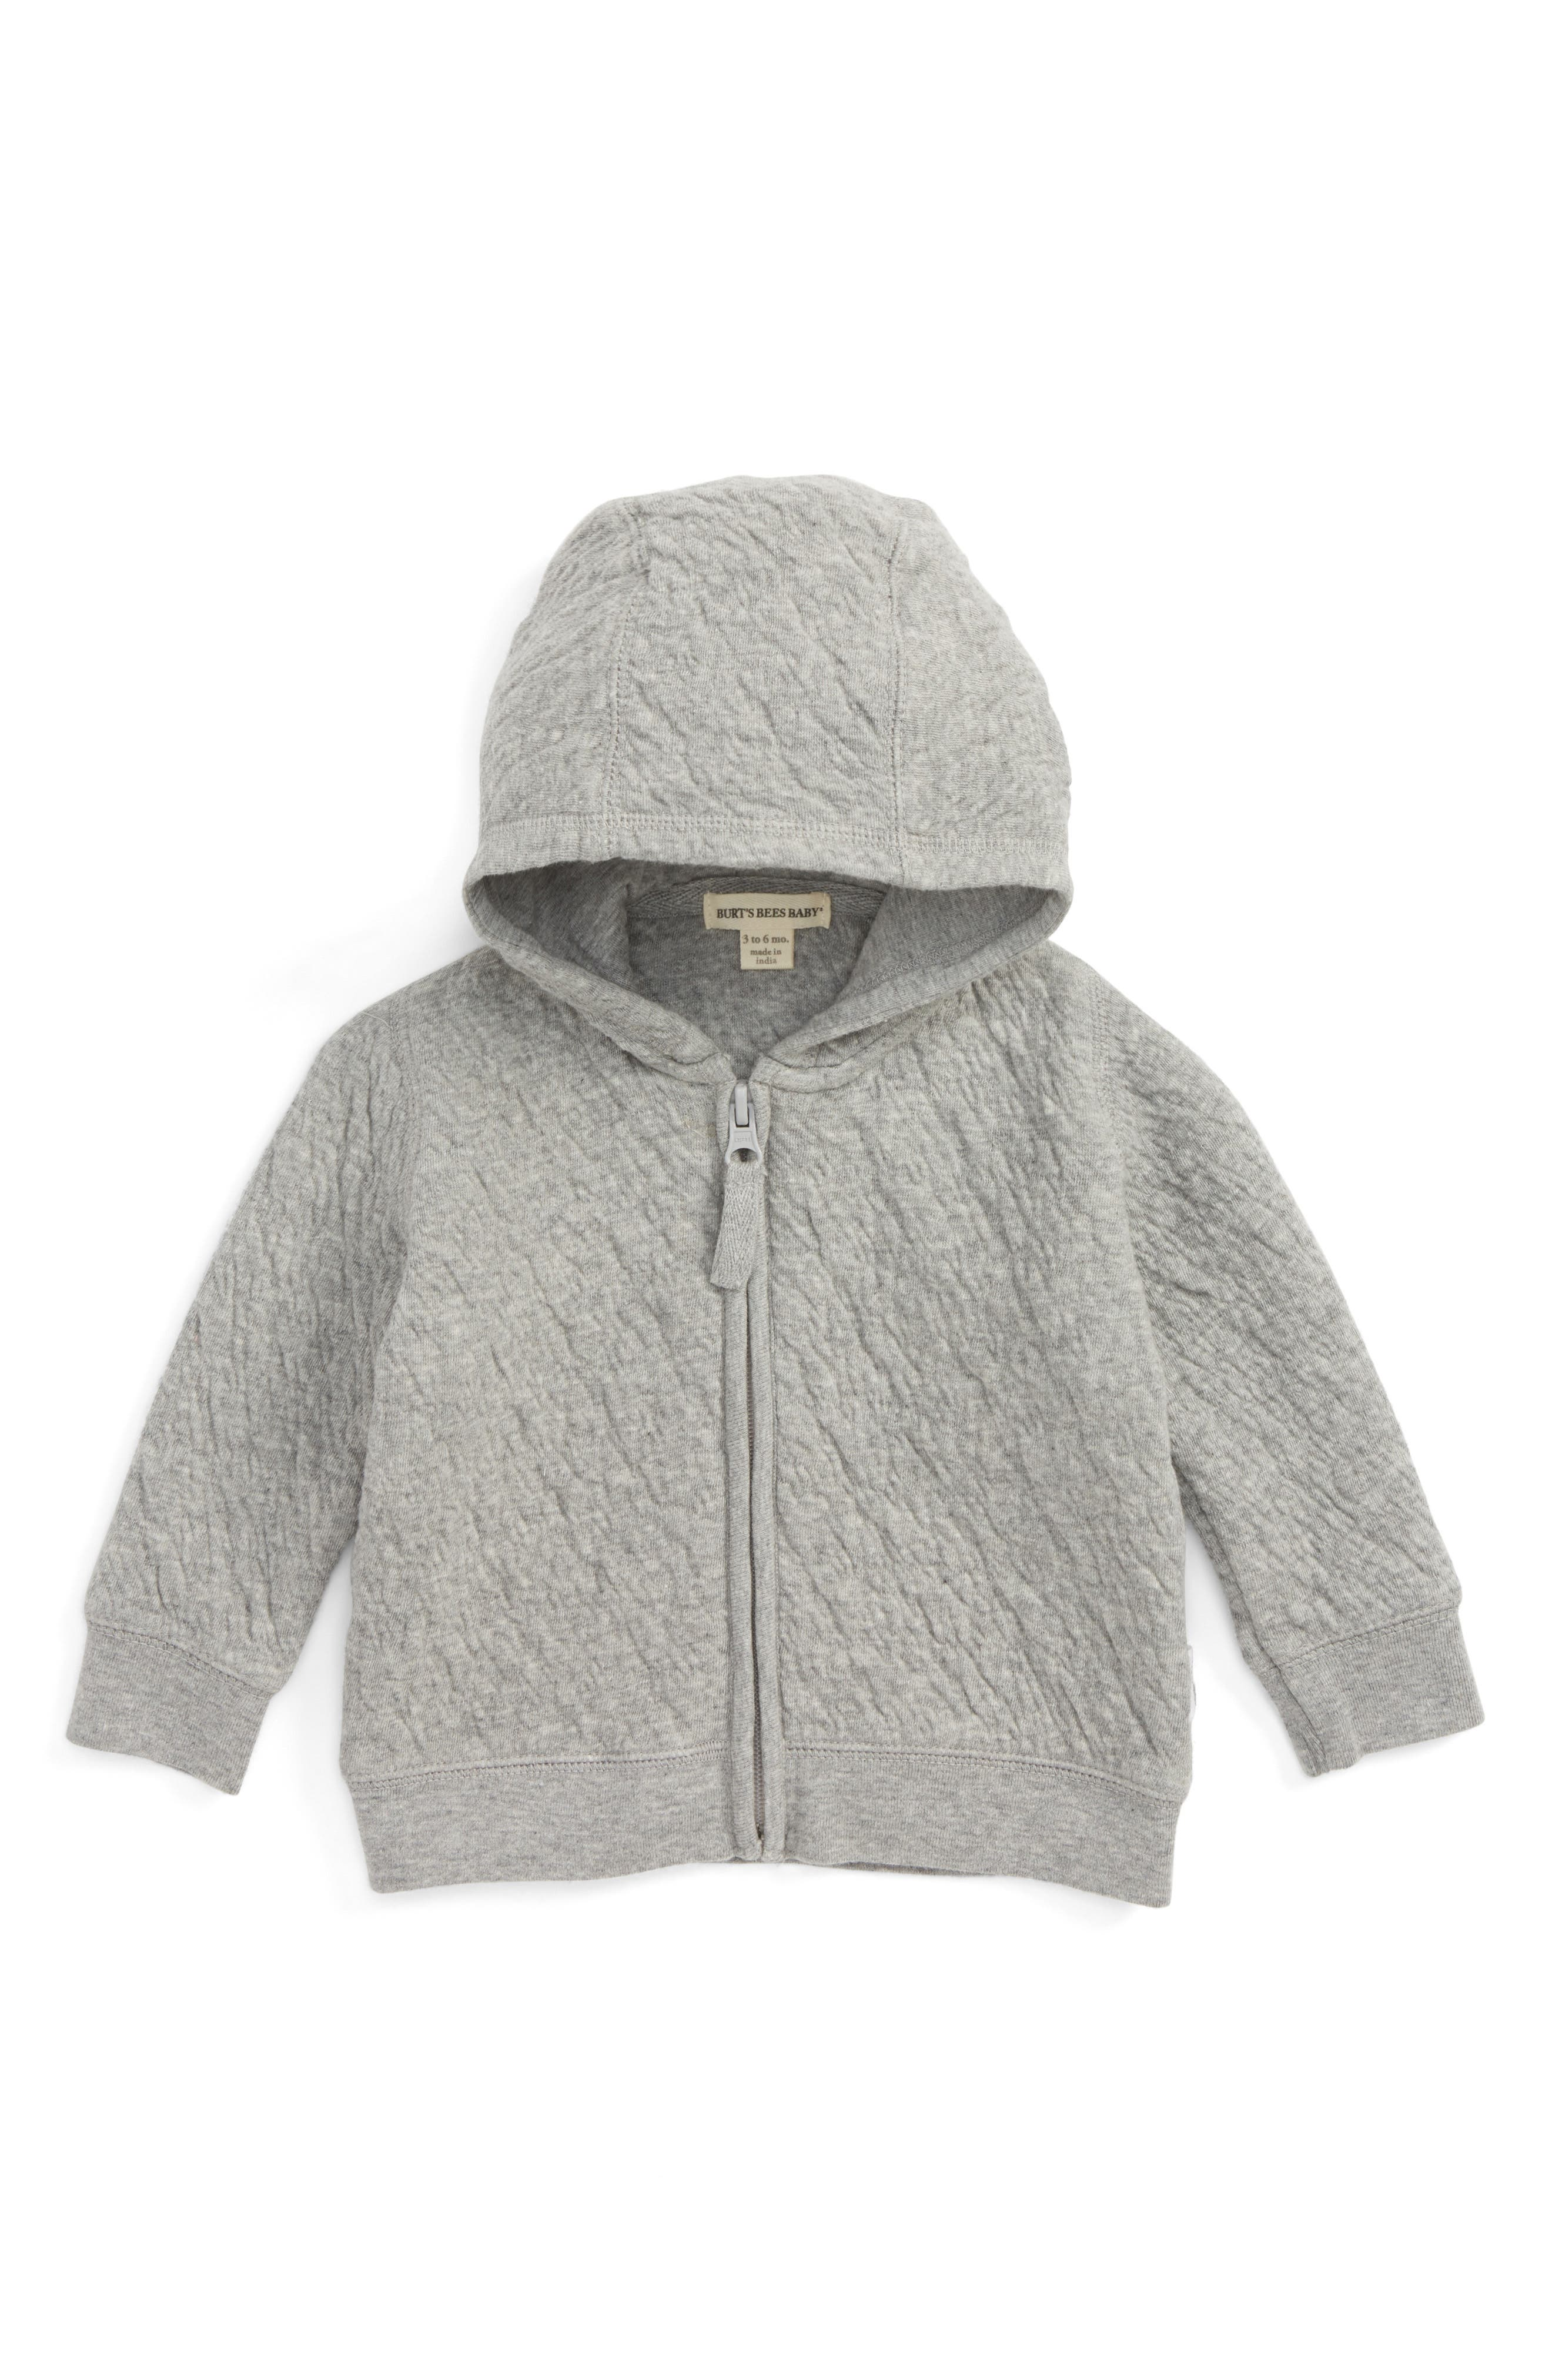 BURTS BEES BABY Quilted Organic Cotton Hooded Jacket